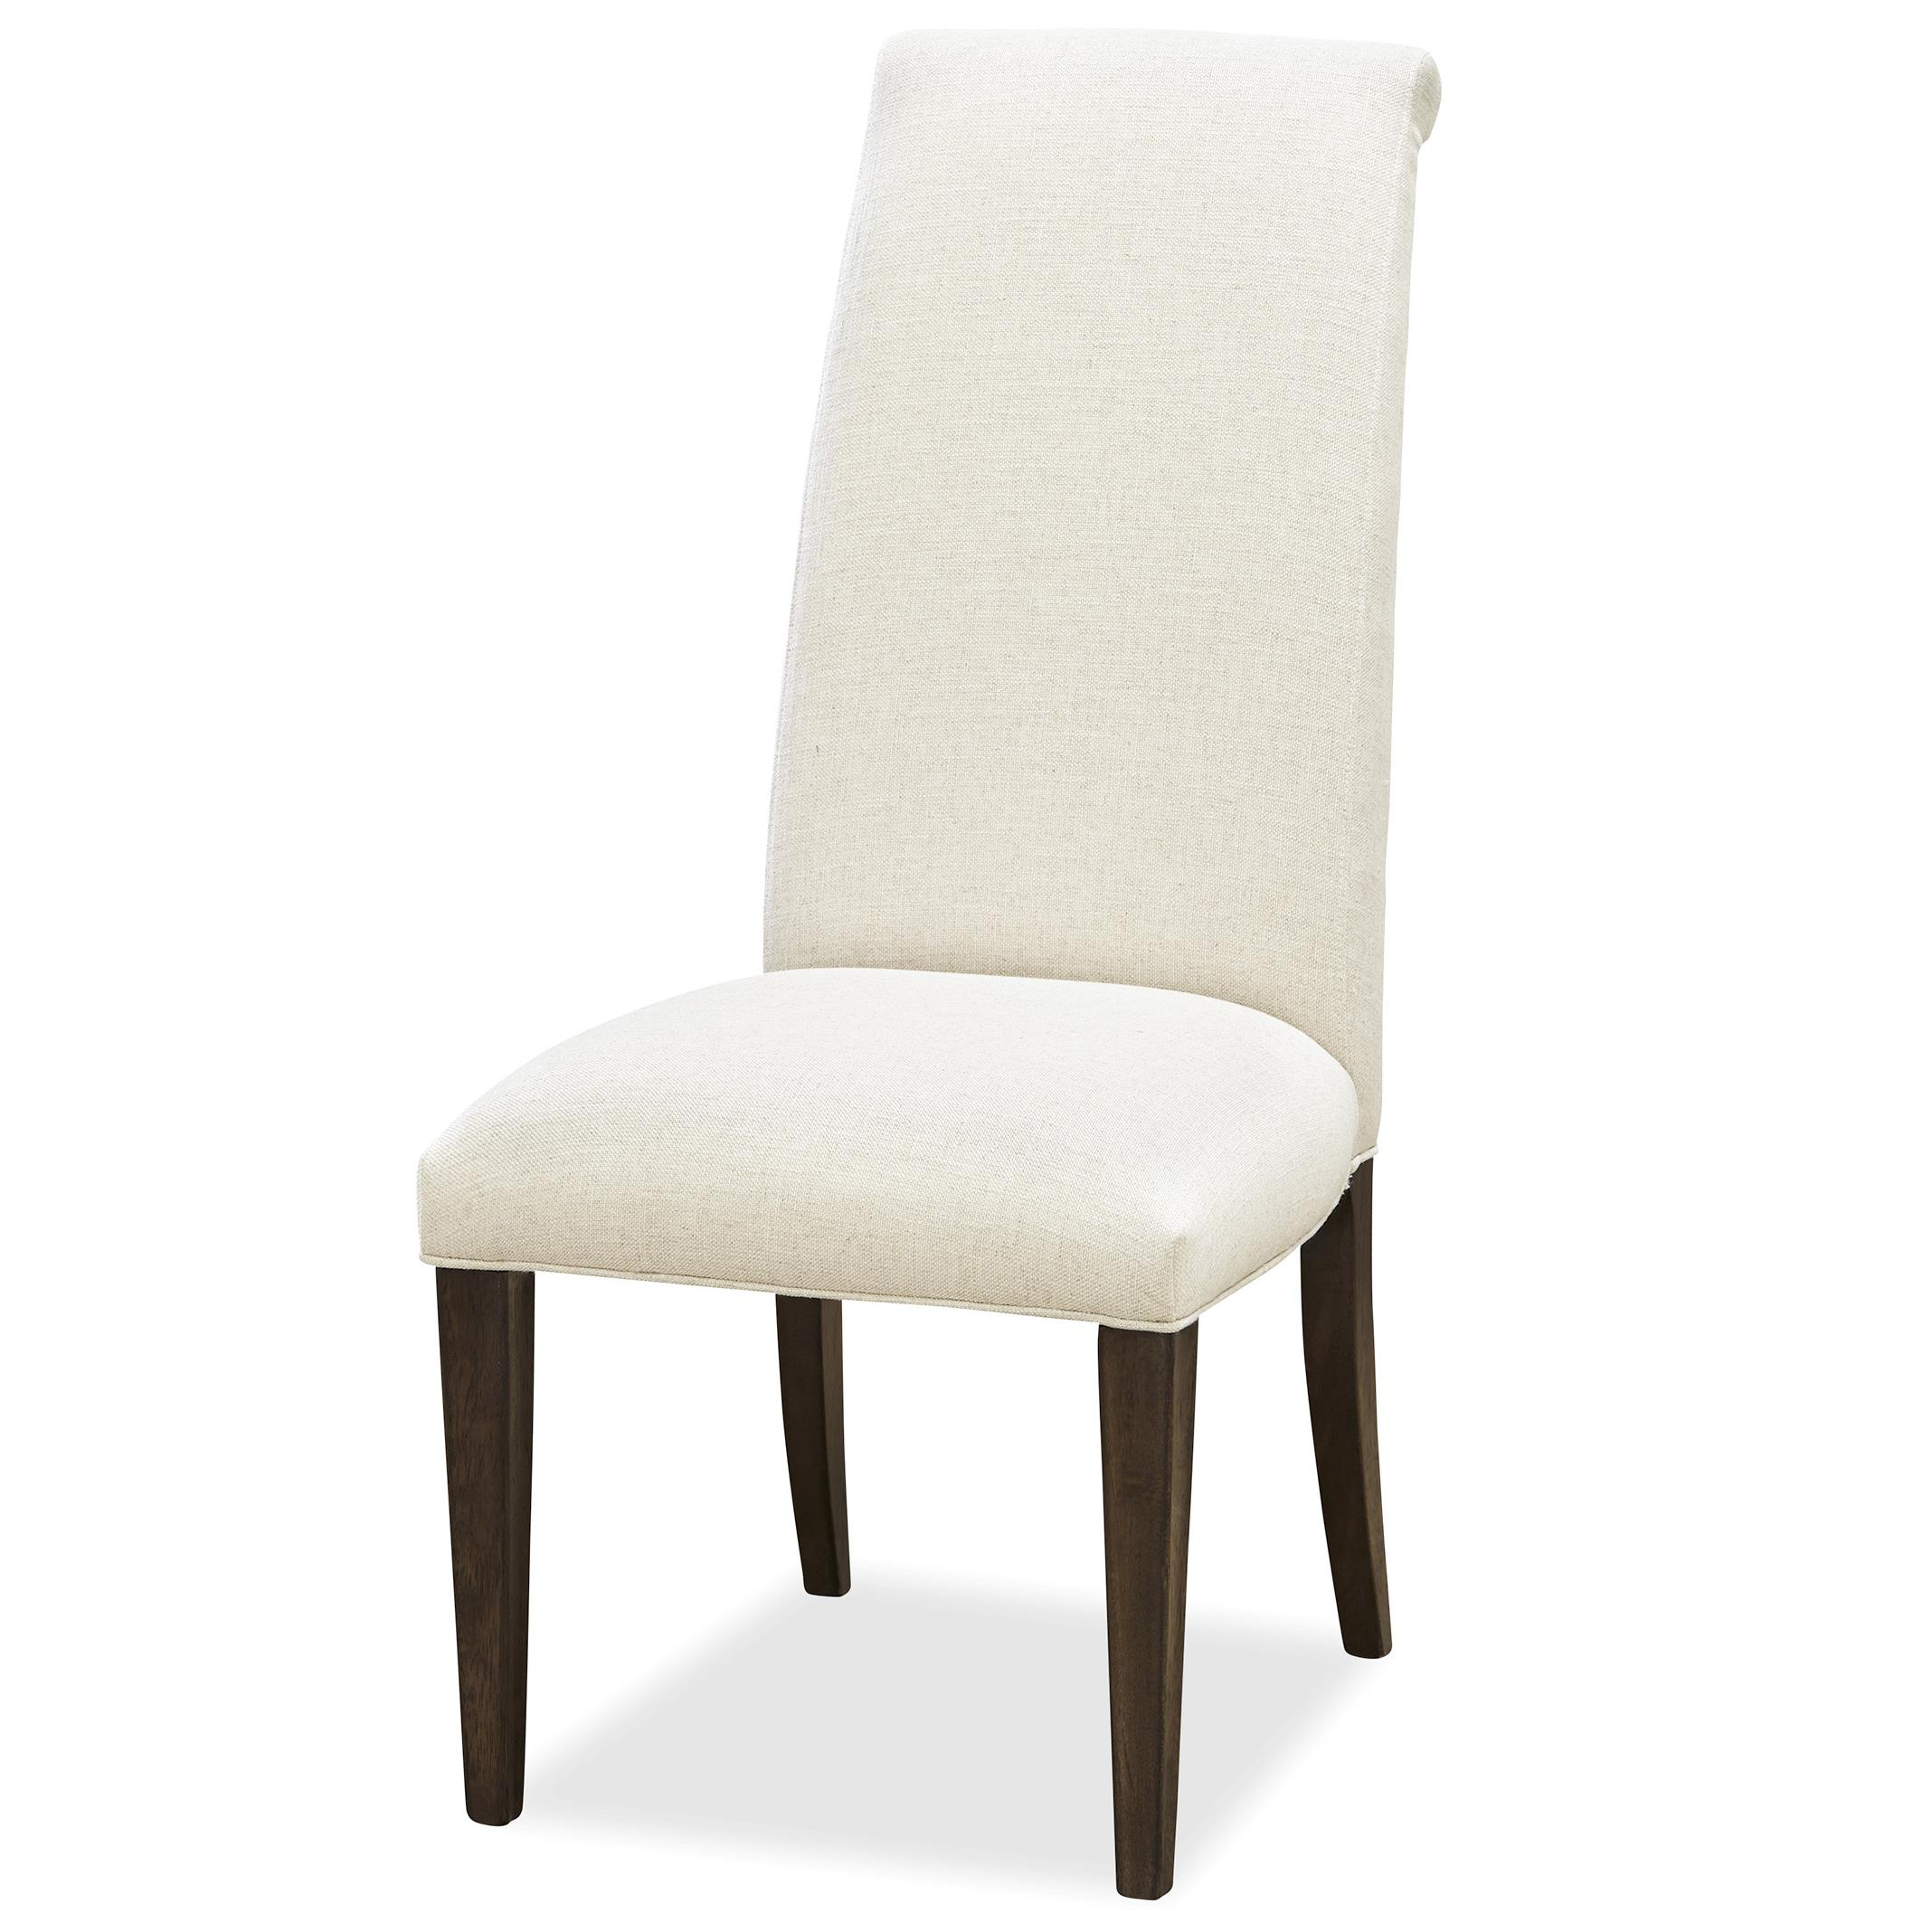 Universal California - Hollywood Hills Side Chair - Item Number: 475638-RTA